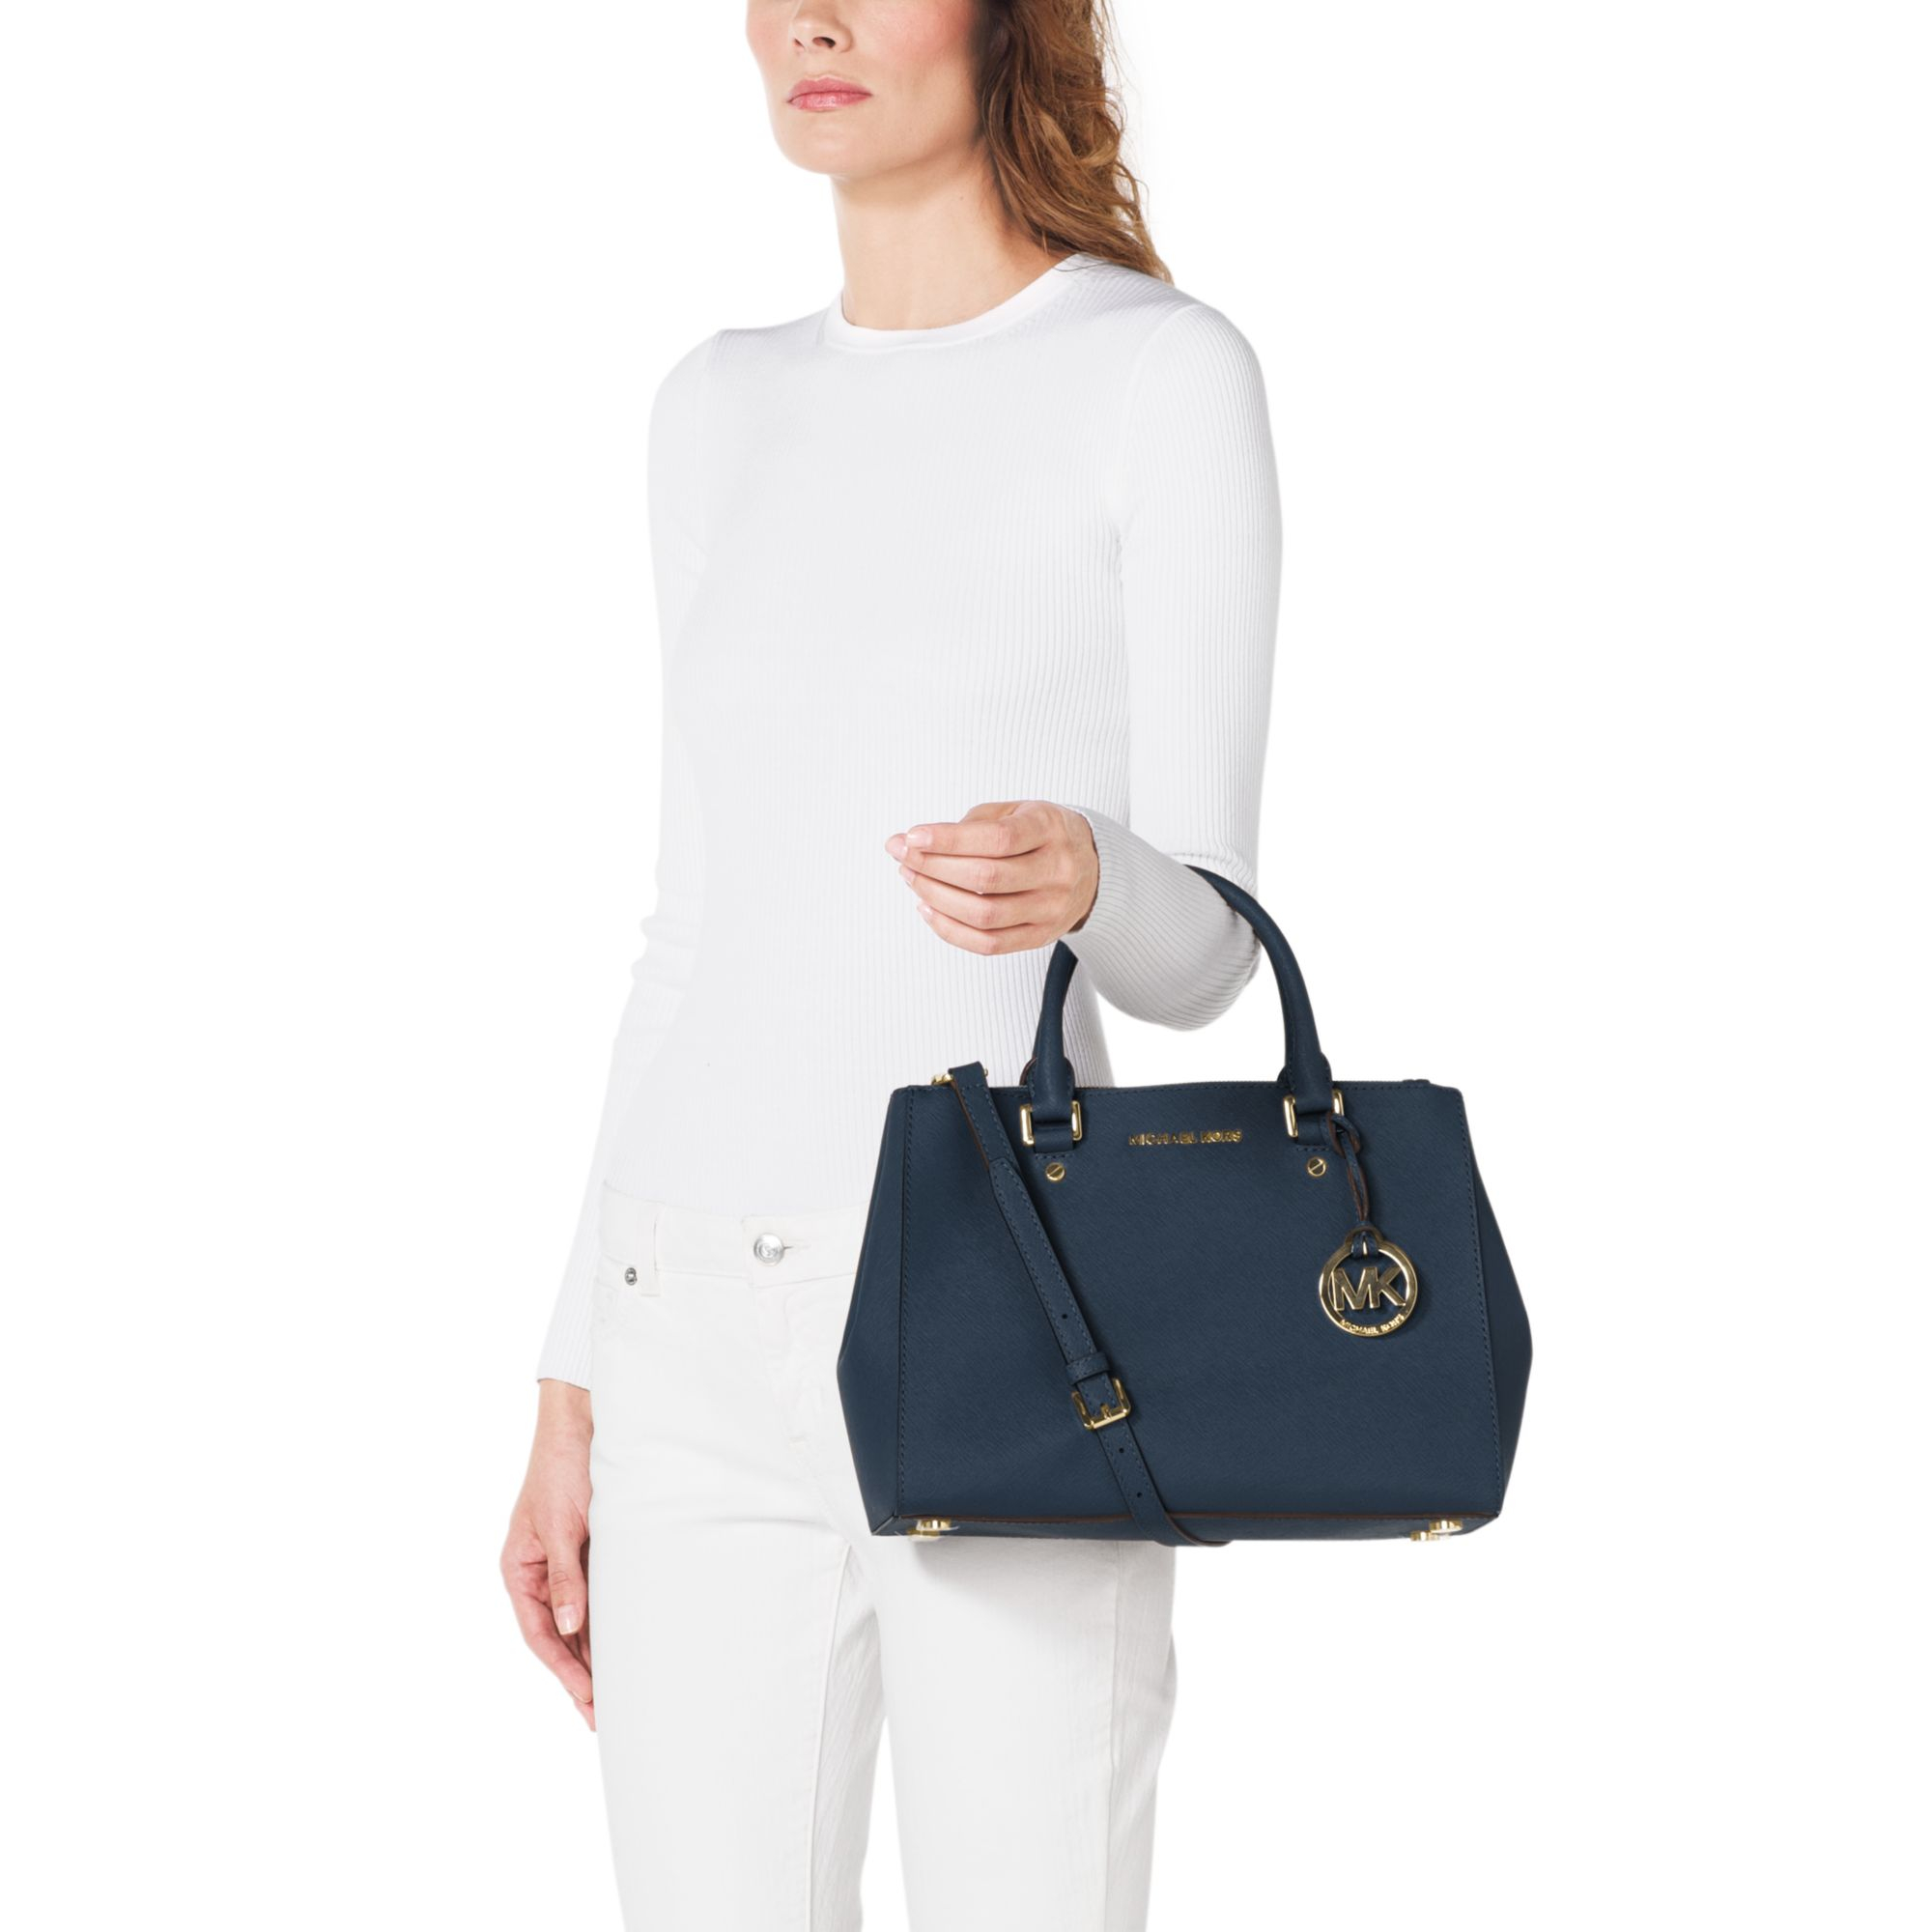 0421d61054 Michael Kors Sutton Medium Saffiano Leather Satchel in Blue - Lyst